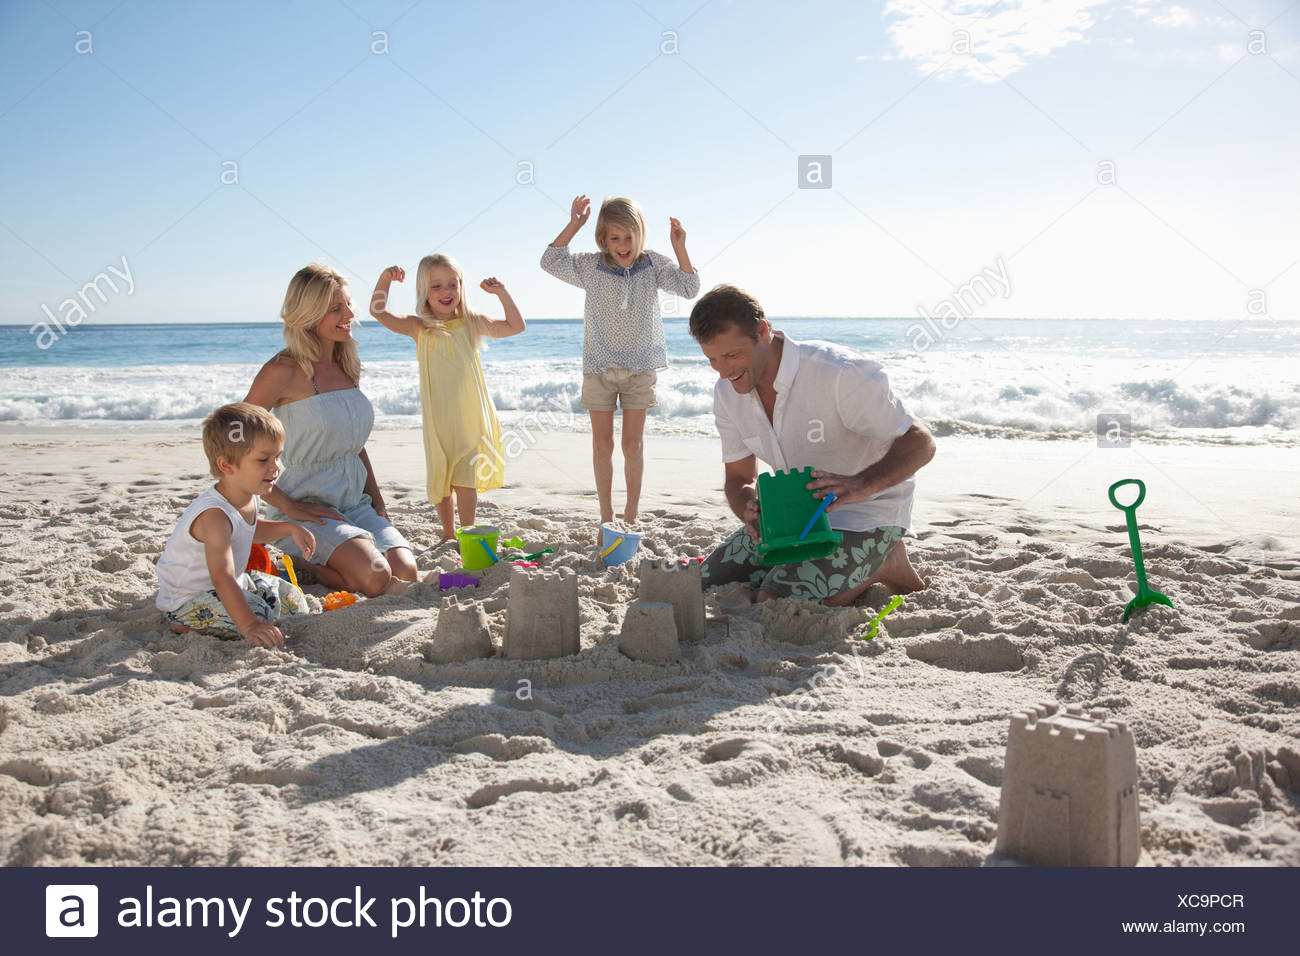 Family making sand castles on beach - Stock Image